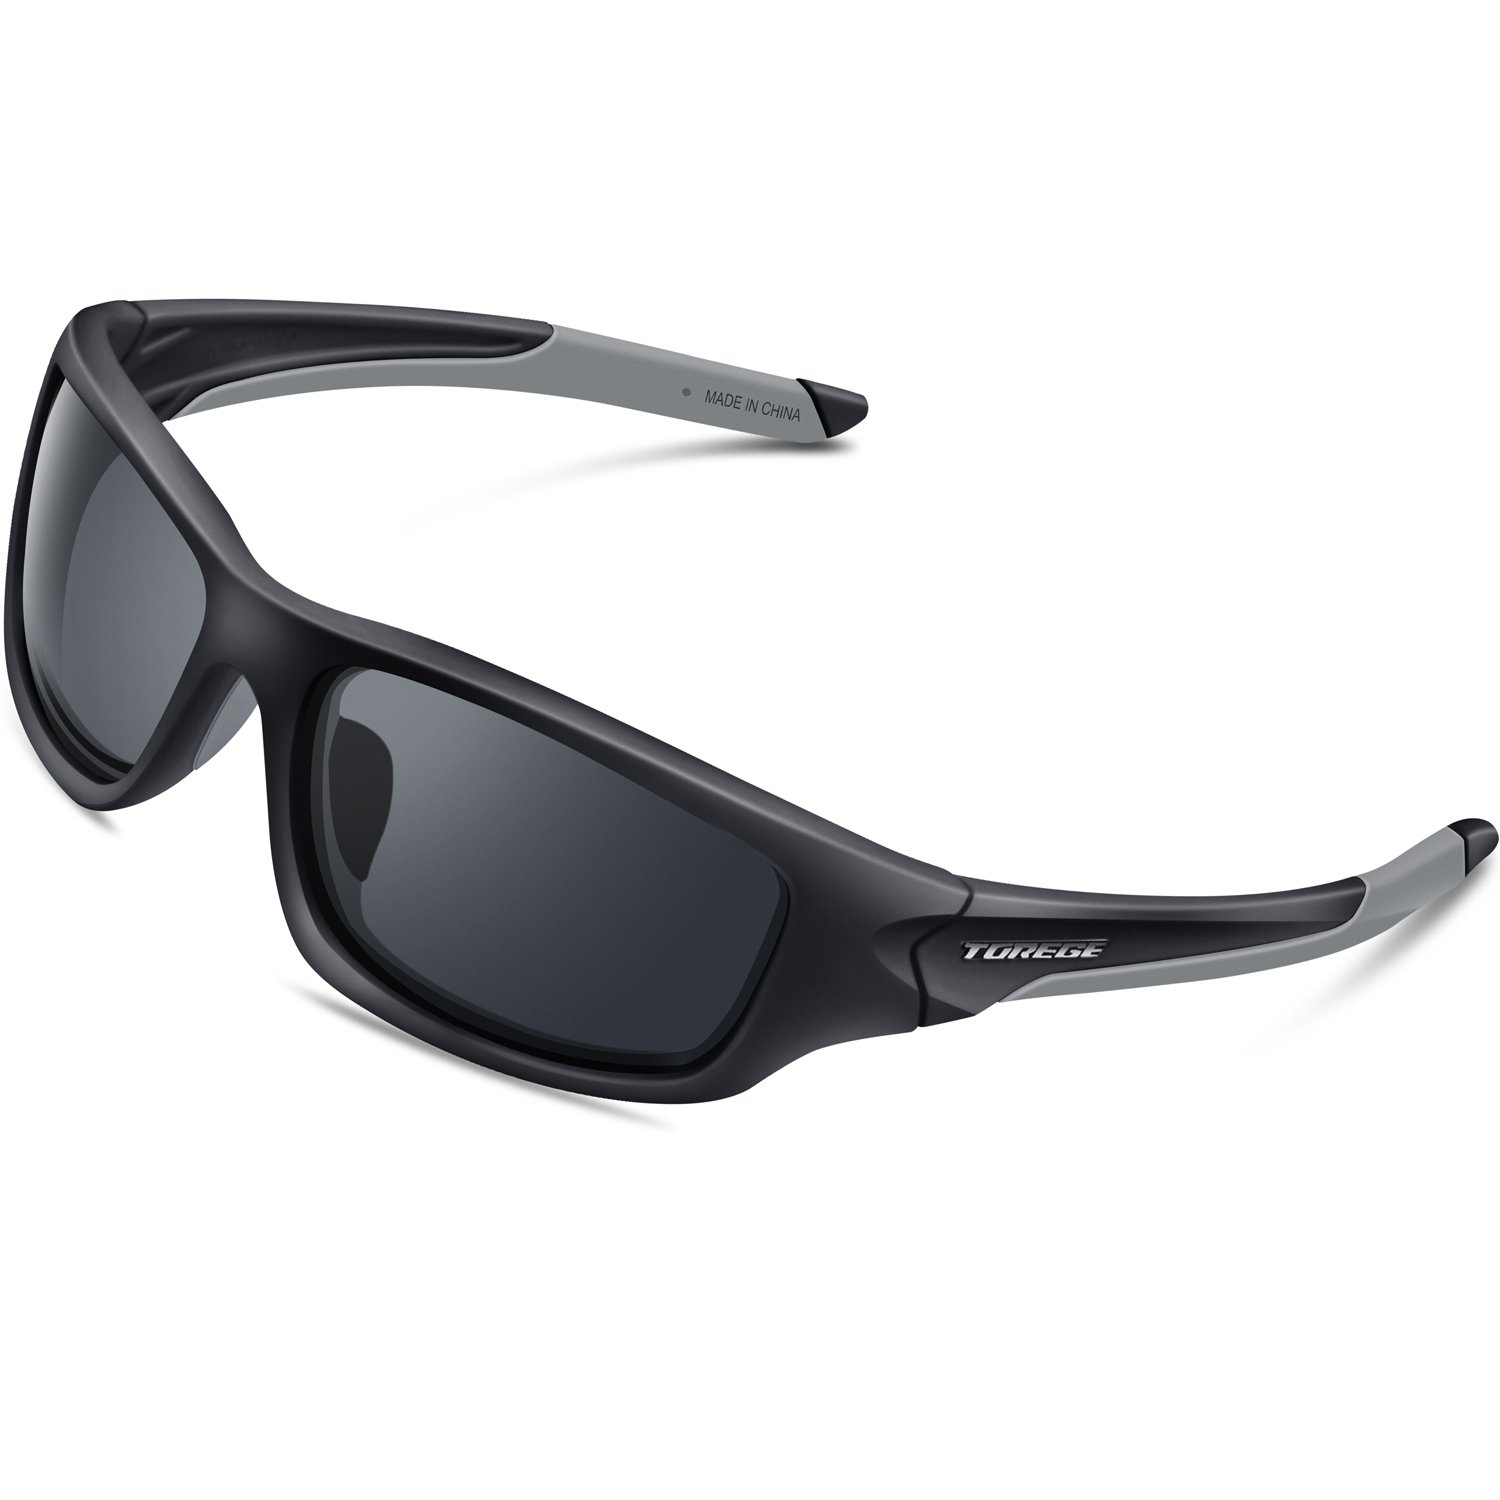 a12fbe7cfd TOREGE Polarized Sports Sunglasses For Man Women Cycling Running ...